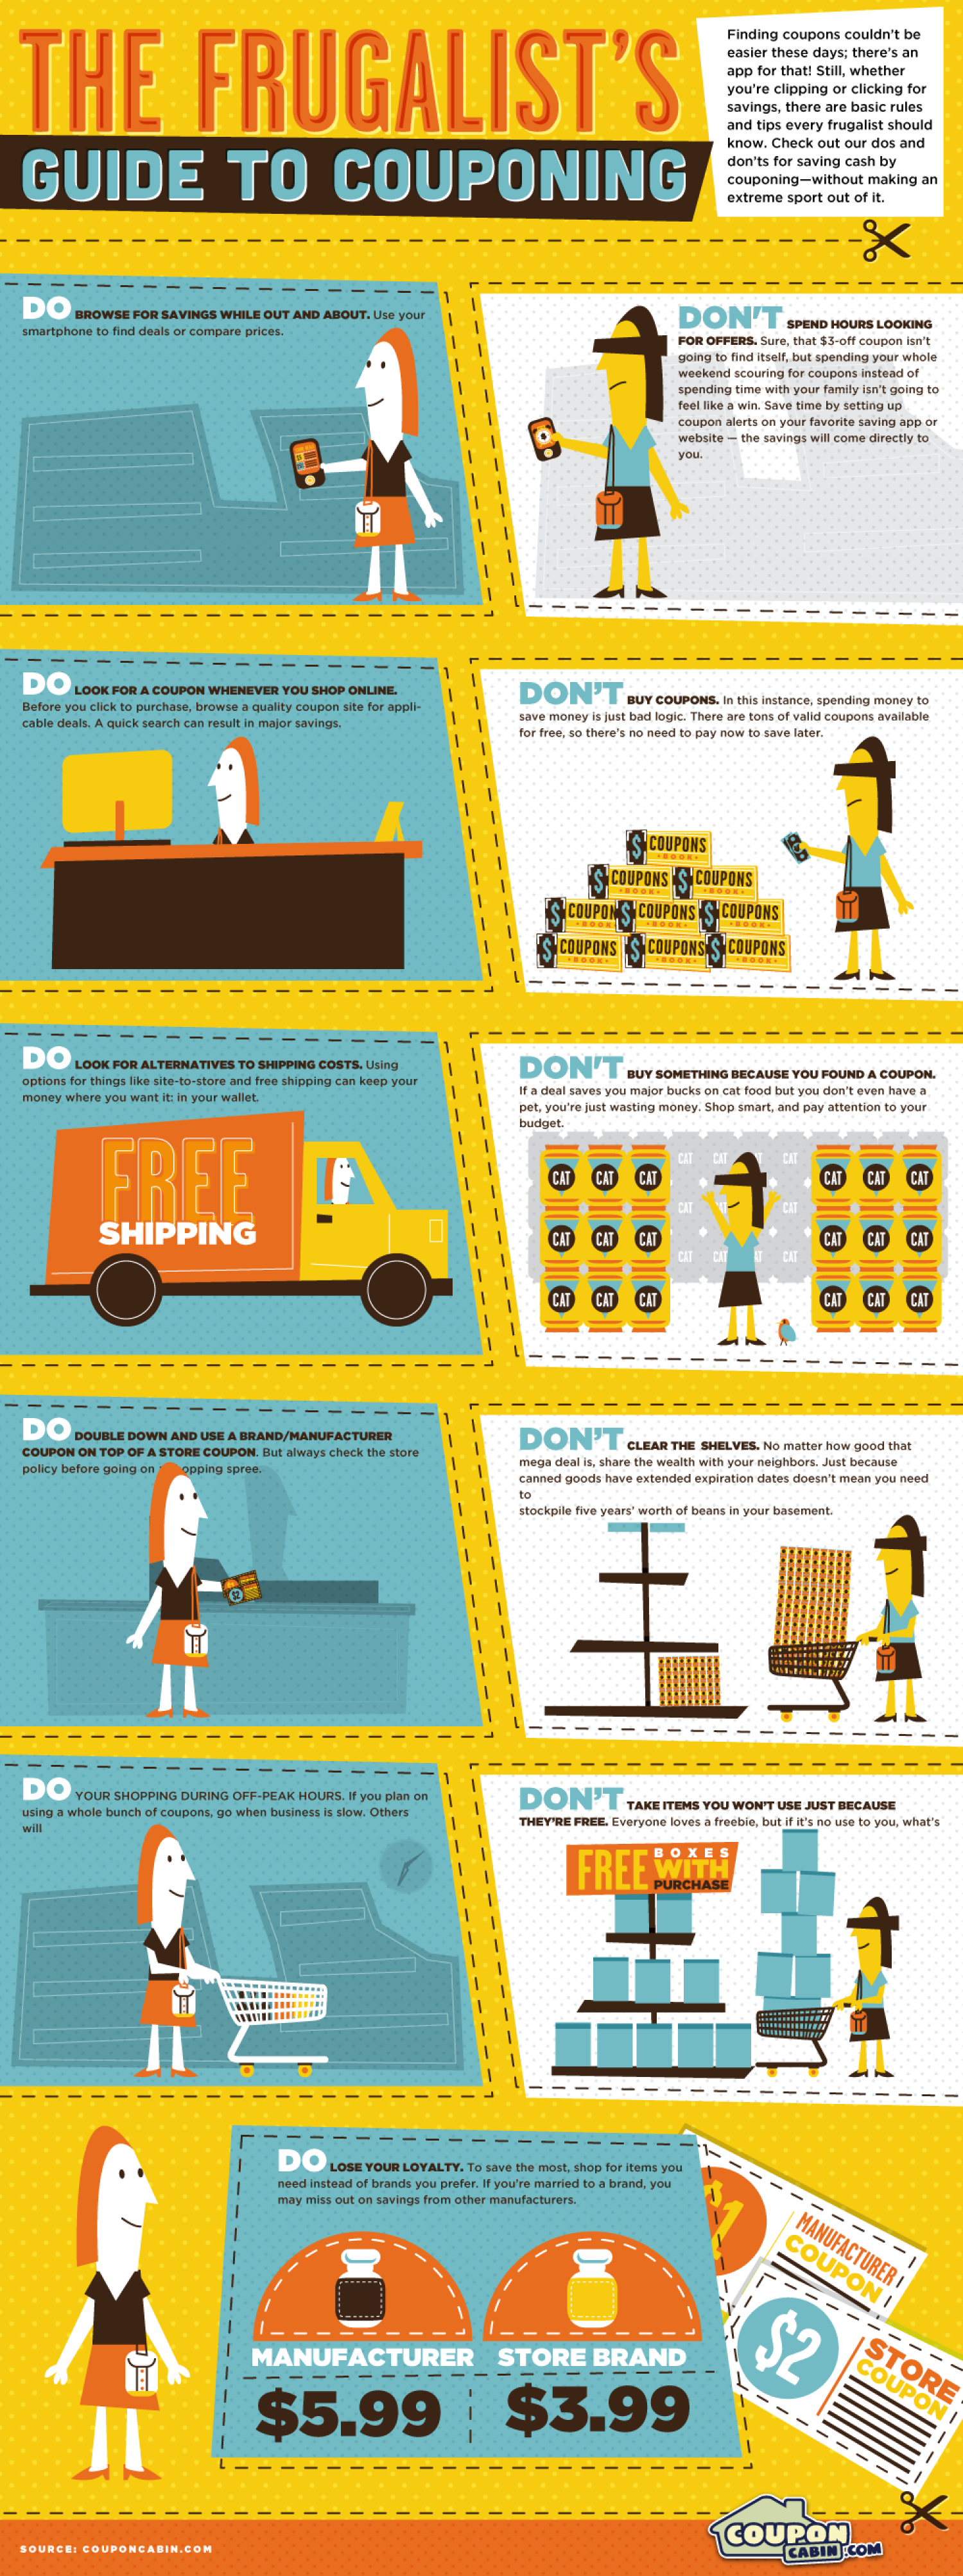 The Frugalist's Guide to Couponing Infographic